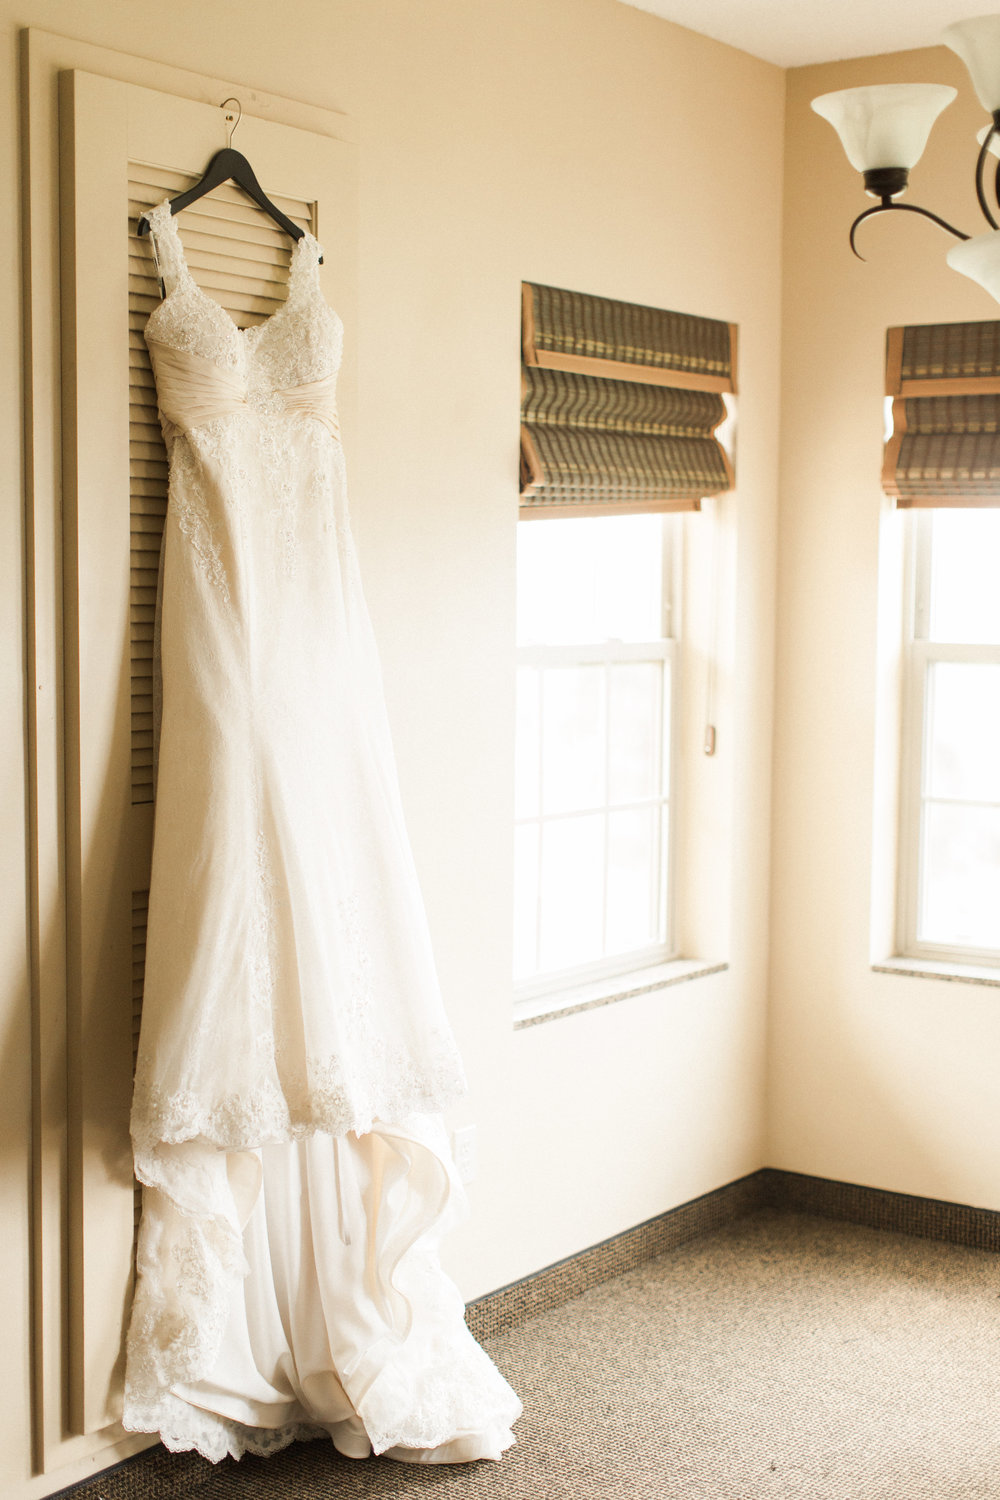 wedding-dress-on-hanger-picture